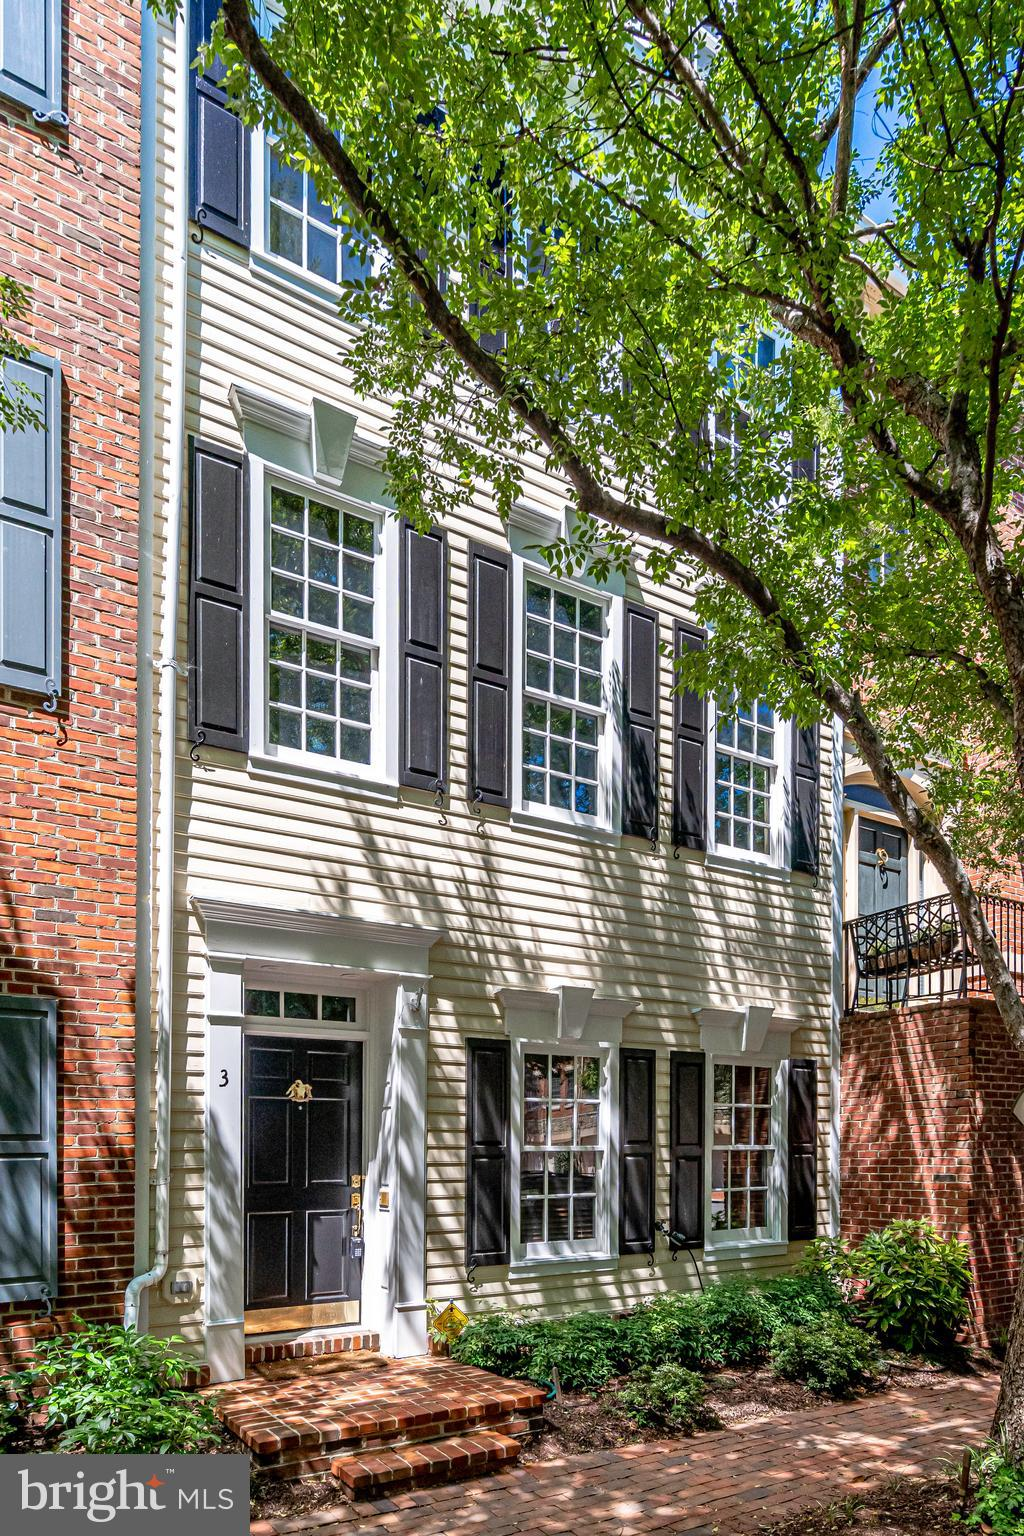 Rarely available 4 level 4BR/3.5BA rowhome w/ Potomac River views in Ford's Landing - one of Old Town's premier waterfront neighborhoods w/ professionally landscaped grounds. Gleaming hardwood floors! Extensive custom millwork & built-ins! Gourmet chef's eat-in kitchen! Master suite w/ walk-in closet, jetted tub & separate shower! Call today for your private showing!